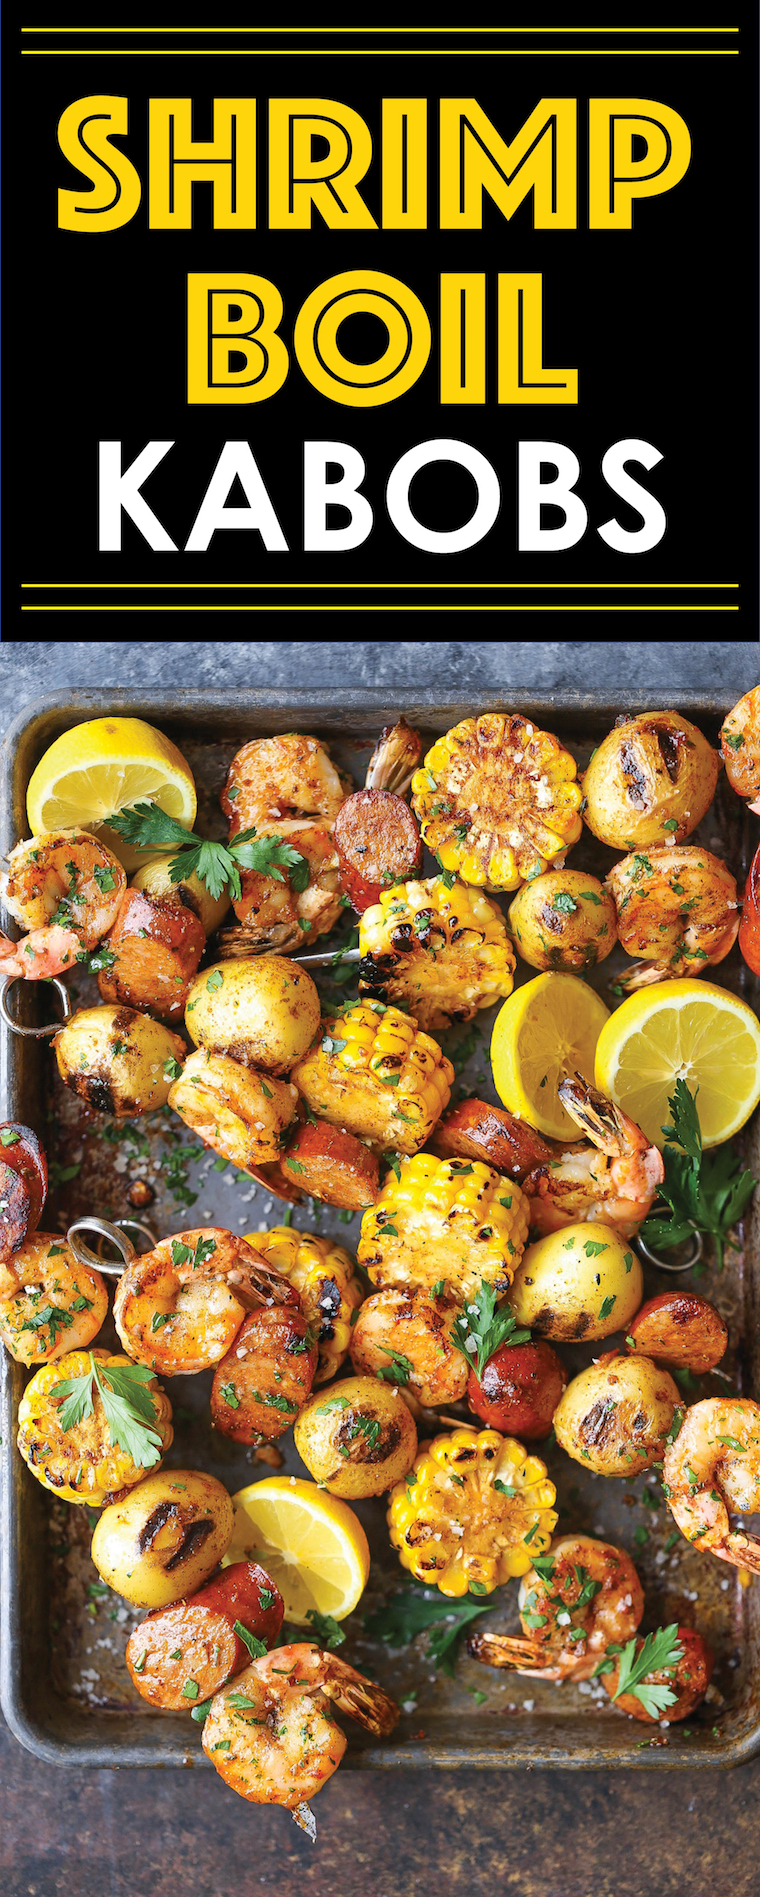 Shrimp Boil Kabobs - The classic shrimp boil is transformed into the tastiest kabobs yet! Can be grilled or baked and prepped in advance! Easy, right?